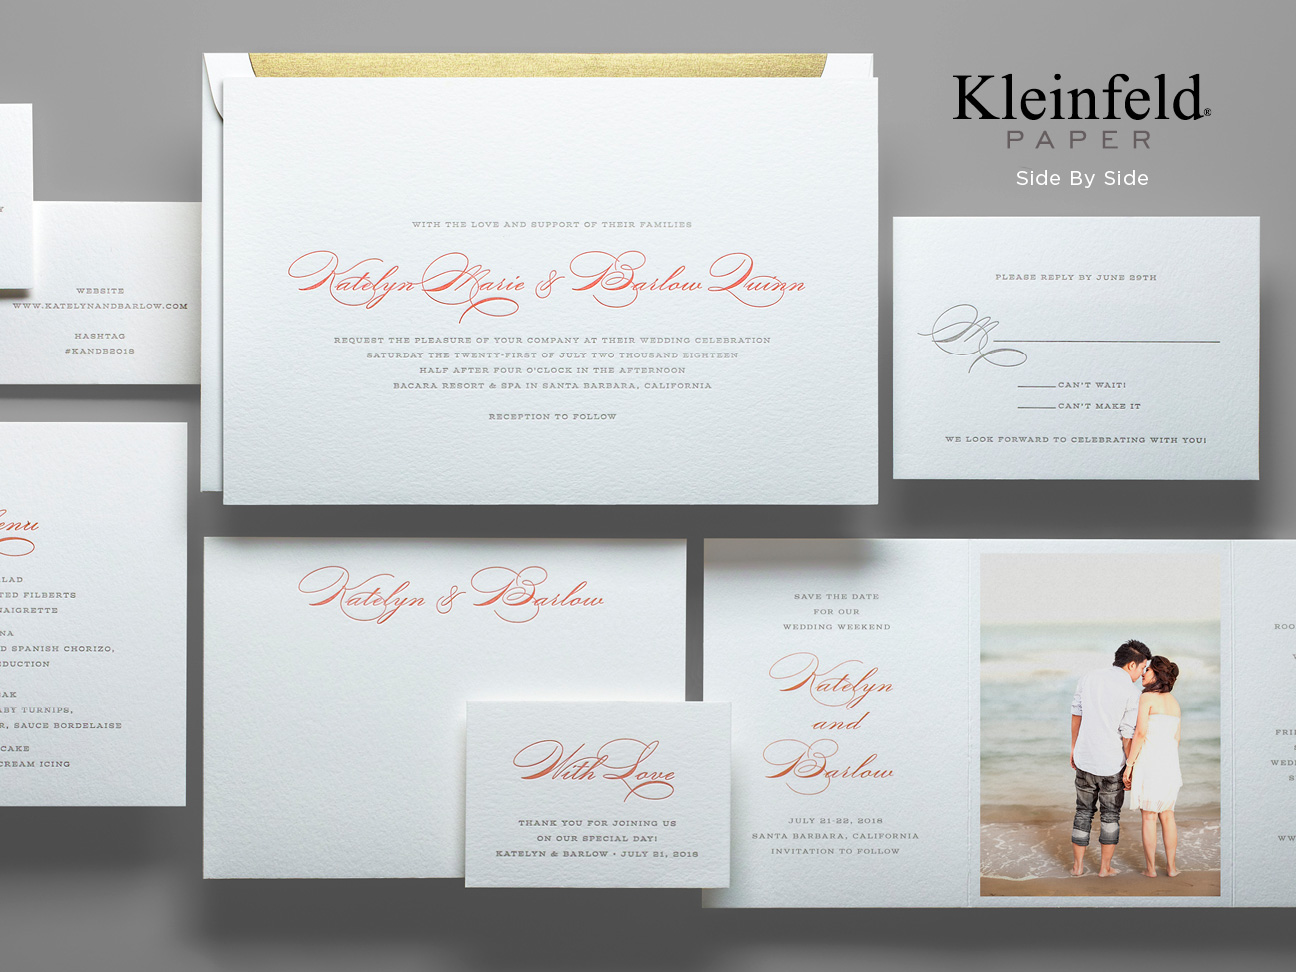 """Side by Side"" by Kleinfeld Paper"